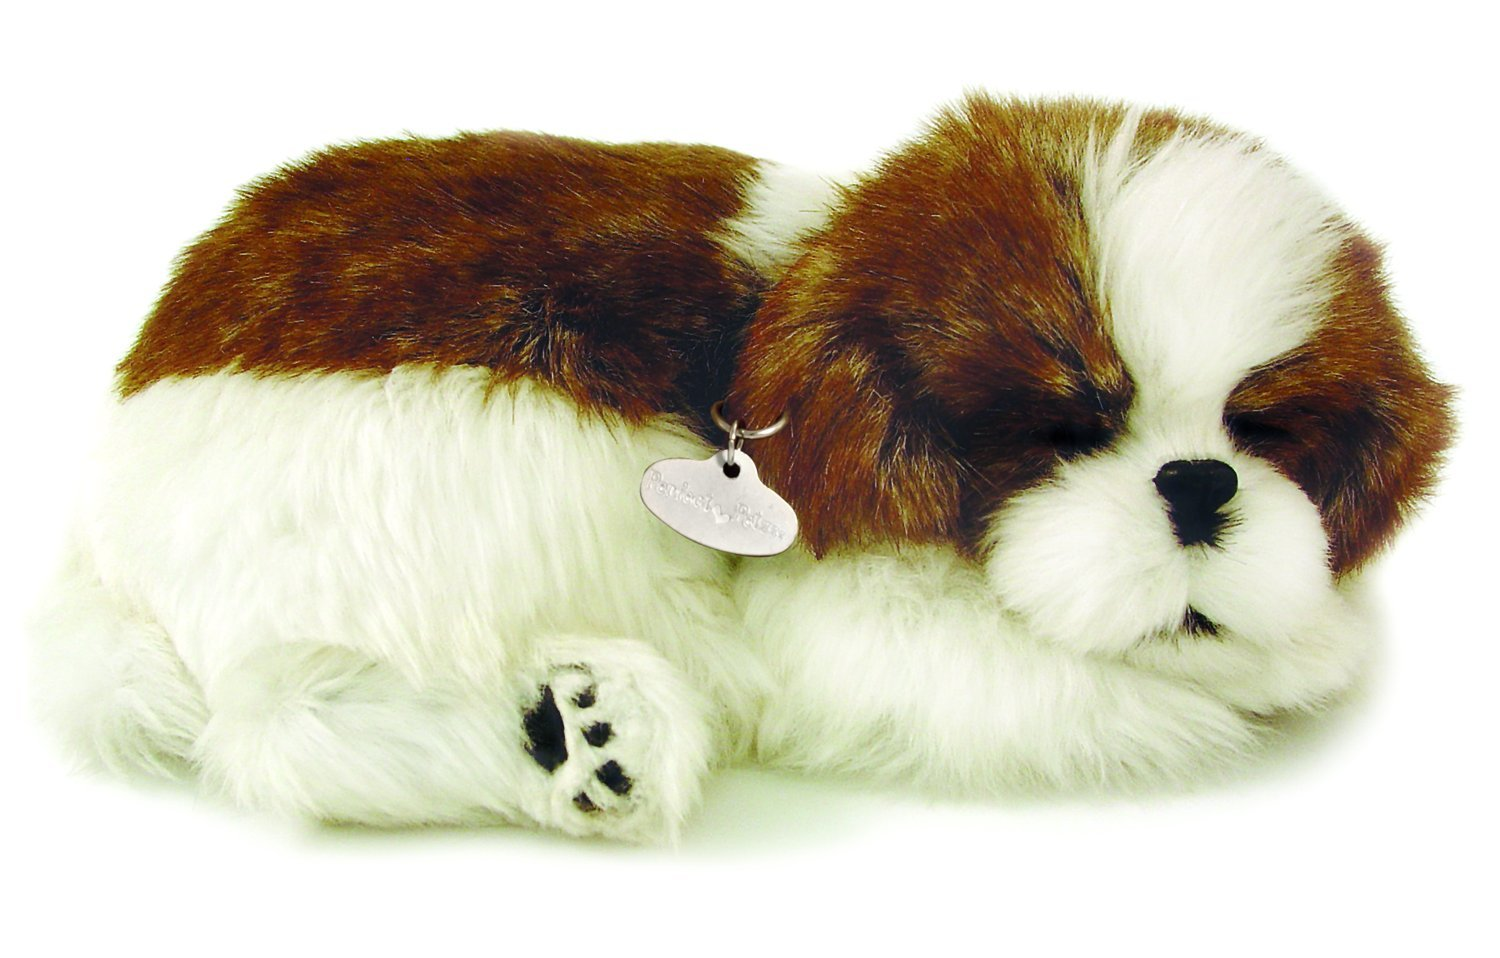 88 Unlimited Sleeping Shih Tzu Plush by 88 Unlimited (Image #1)